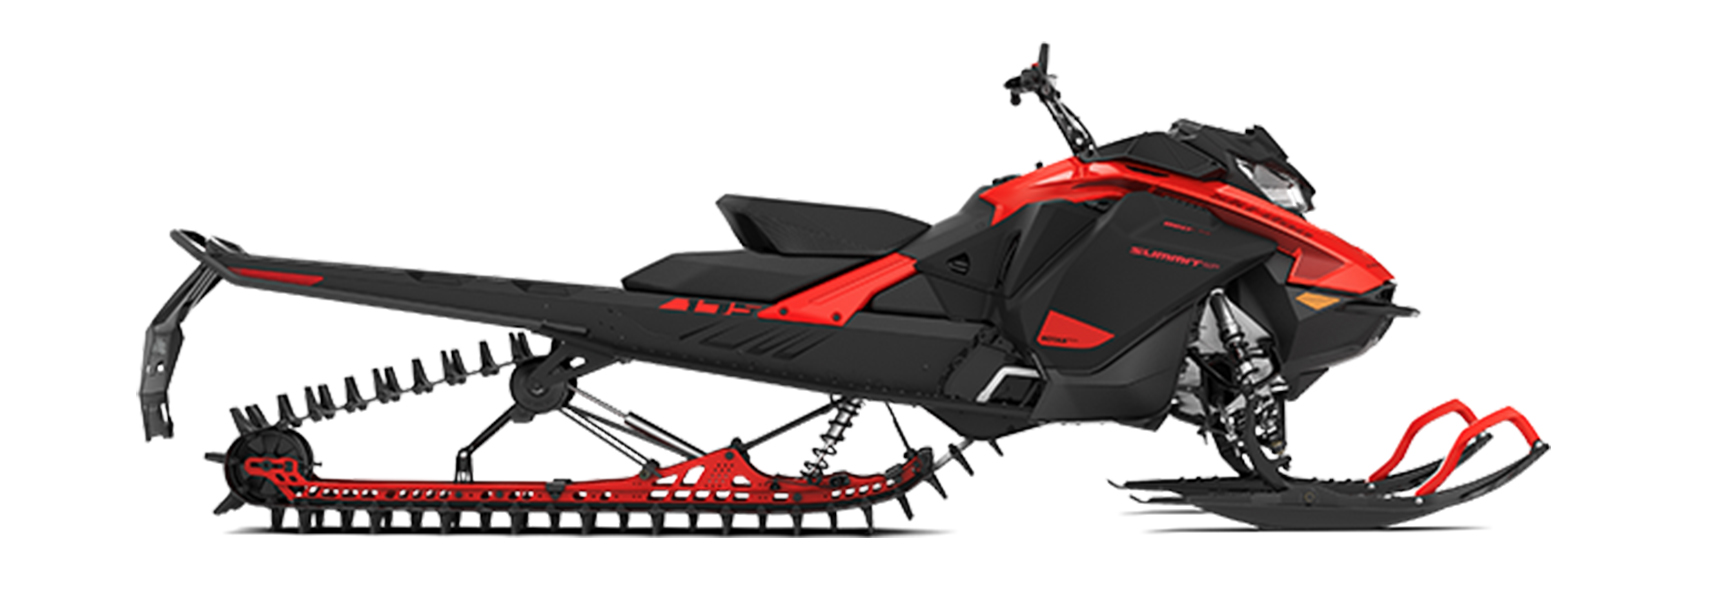 Ski-Doo - 2021 Summit SP